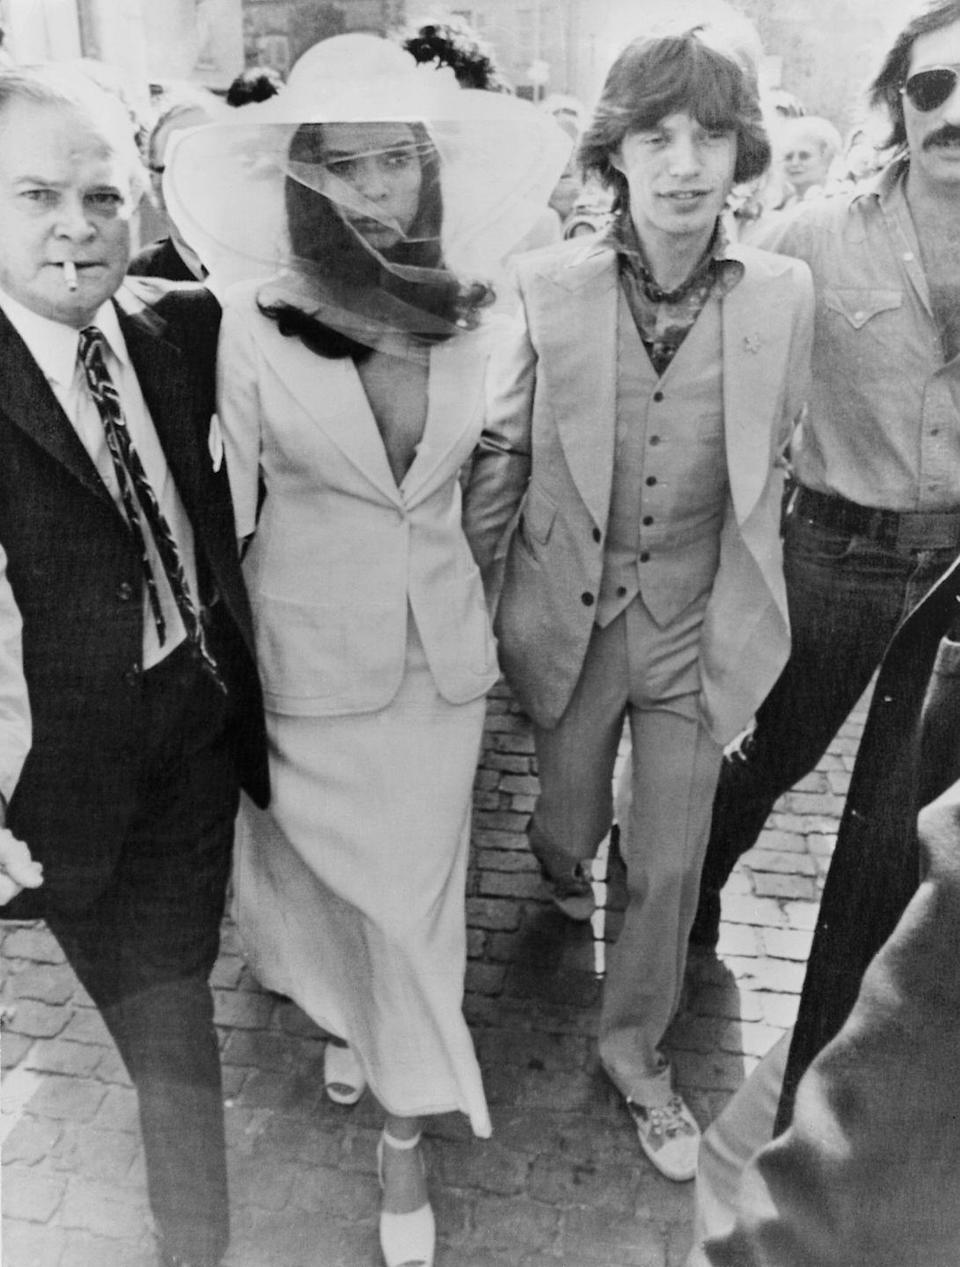 <p>When model Bianca Jagger married Rolling Stones lead singer Mick Jagger in 1971, she wore a low-cut white skirt suit that was by no means conventional, yet it's still easily one of the most stylish celebrity bridal looks of the decade.</p>